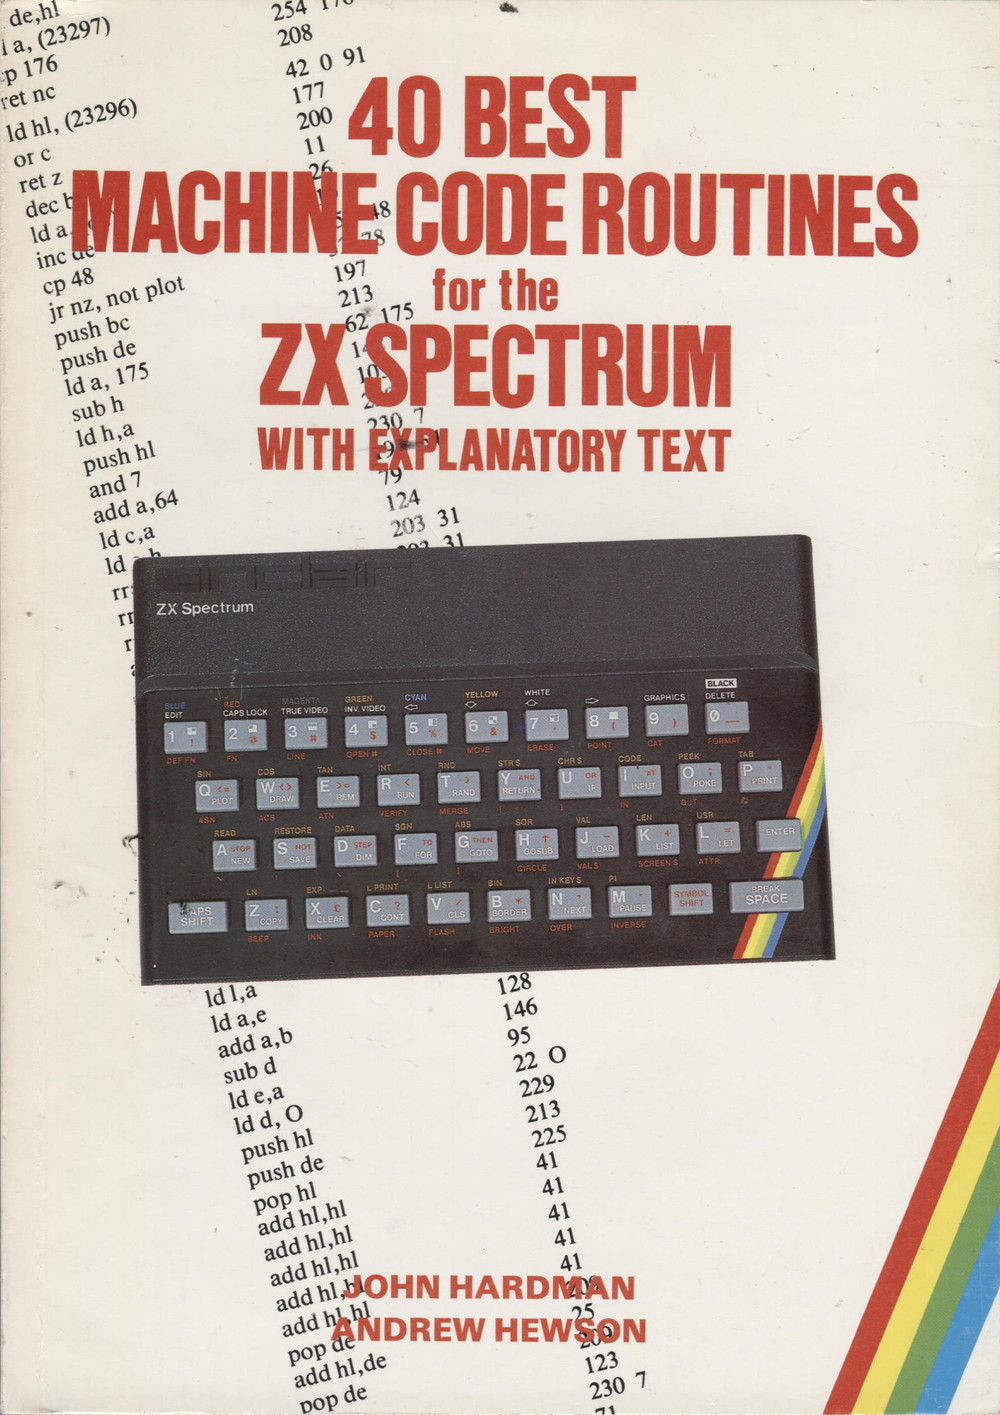 40 Best Machine Code Routines for the ZX Spectrum